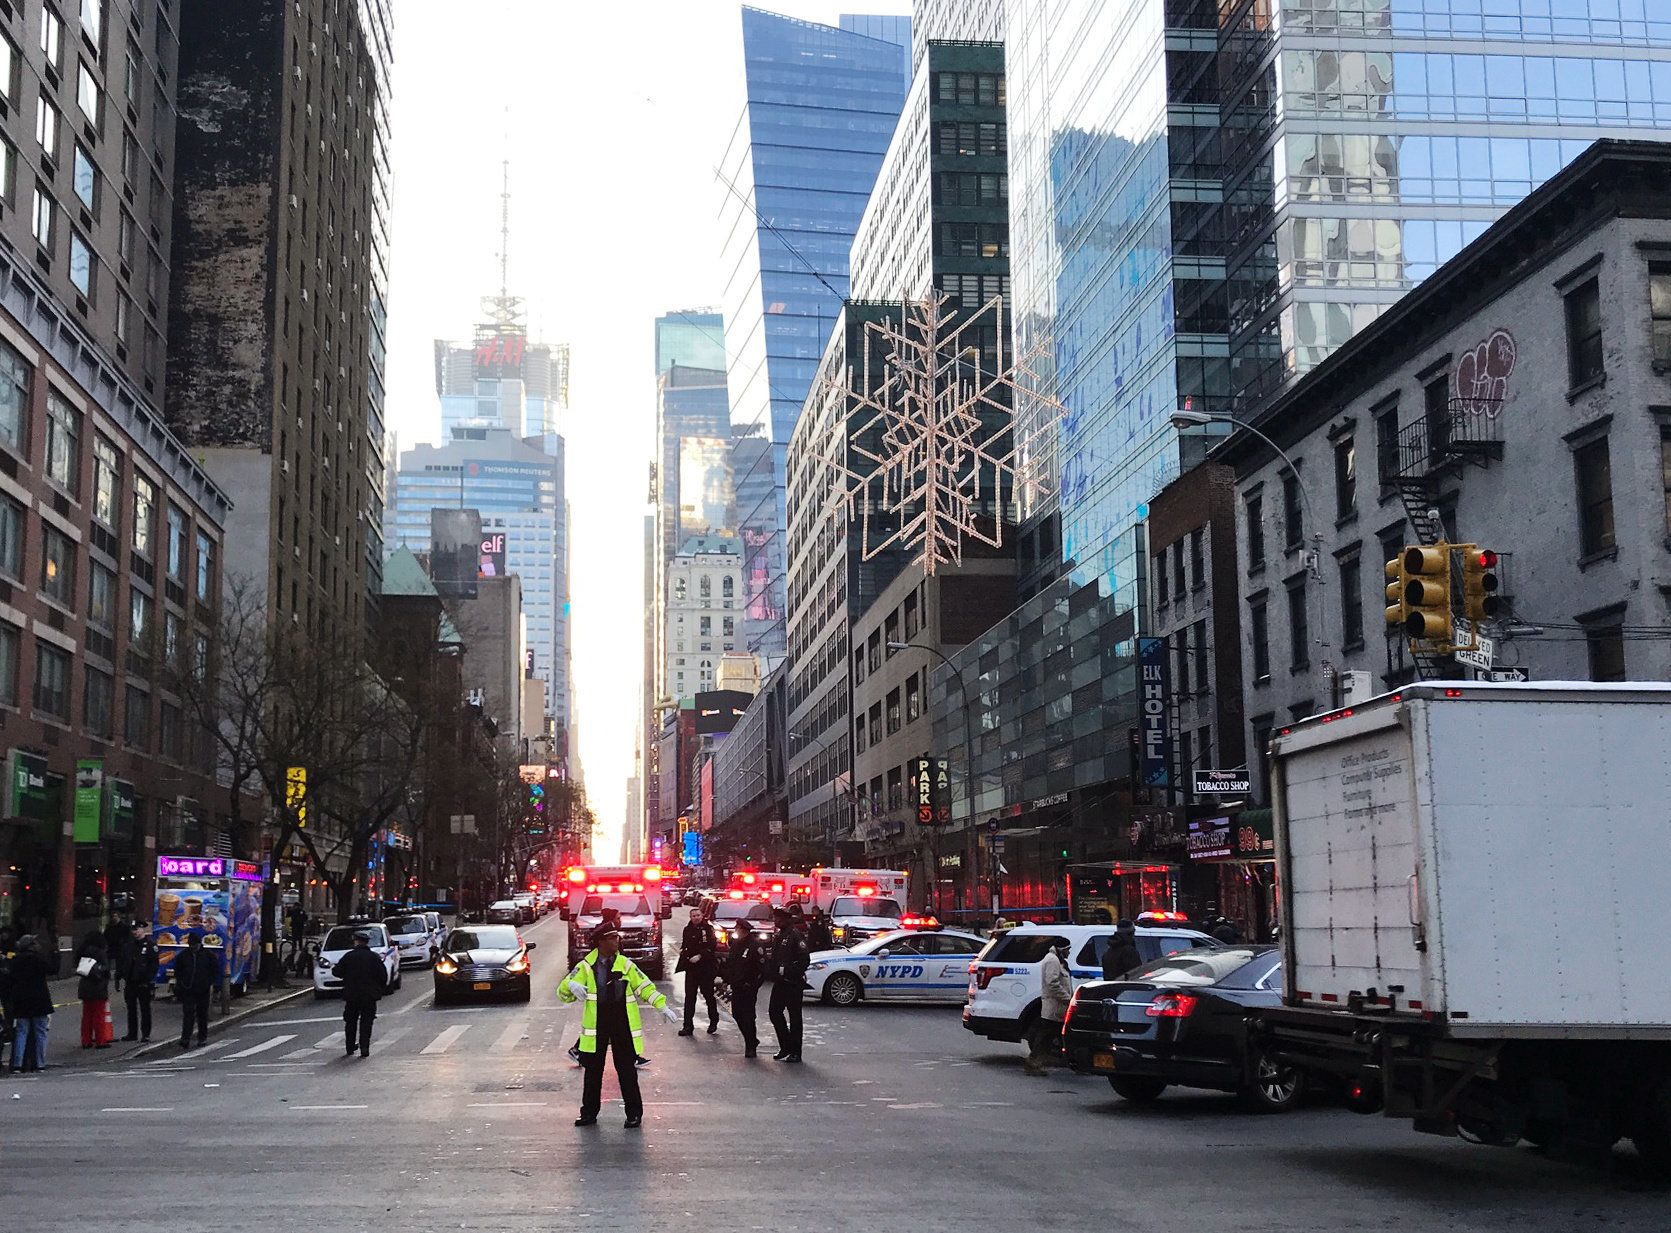 Suspect Captured After 'Terror-Related' Explosion In New York Prompts Subway